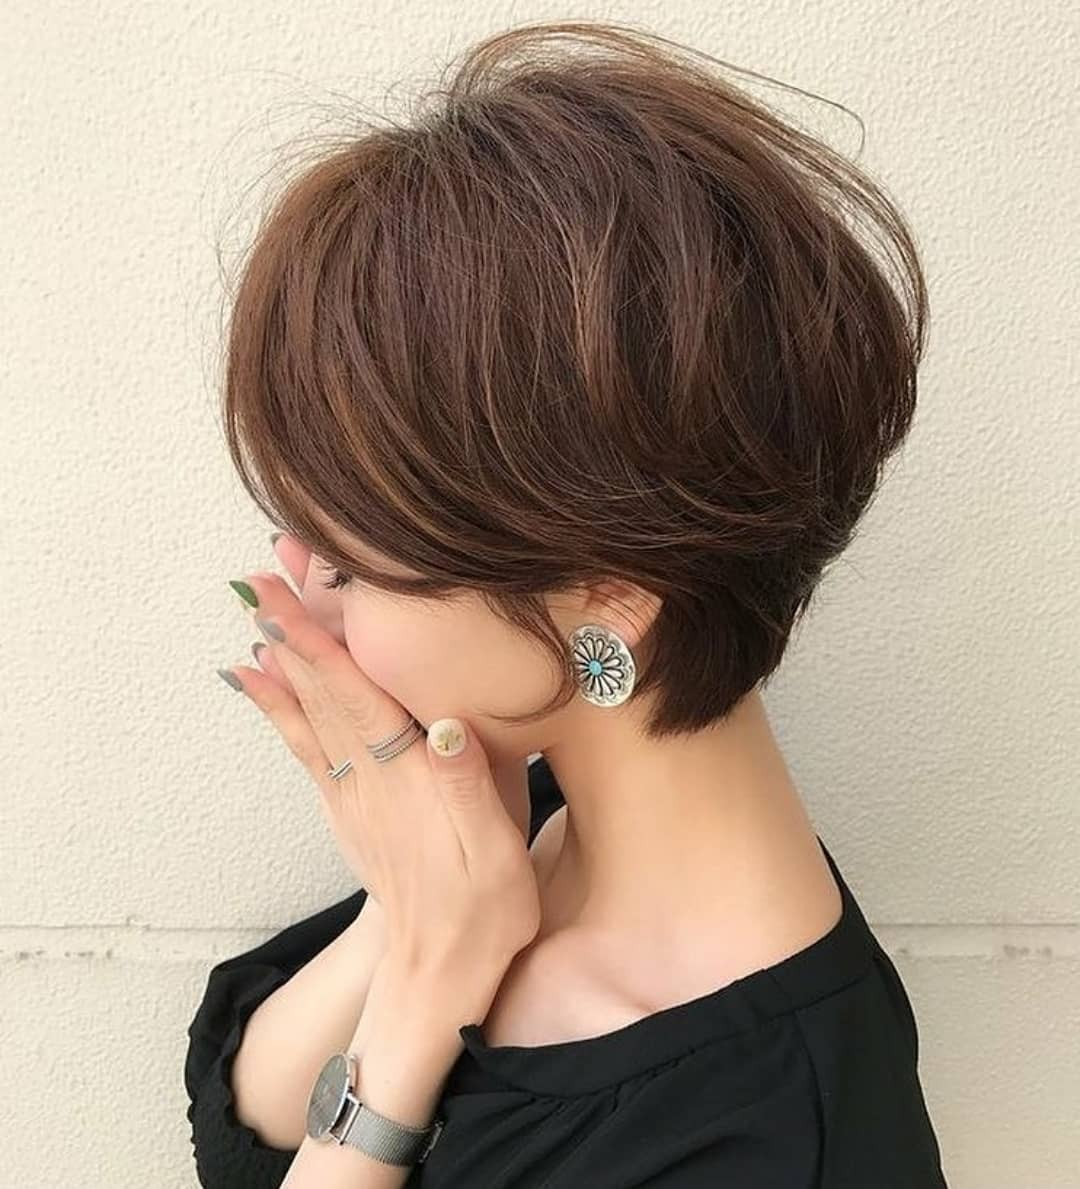 Best ideas about Short Haircuts For Girls 2019 . Save or Pin 10 Cute Short Hairstyles and Haircuts for Young Girls Now.